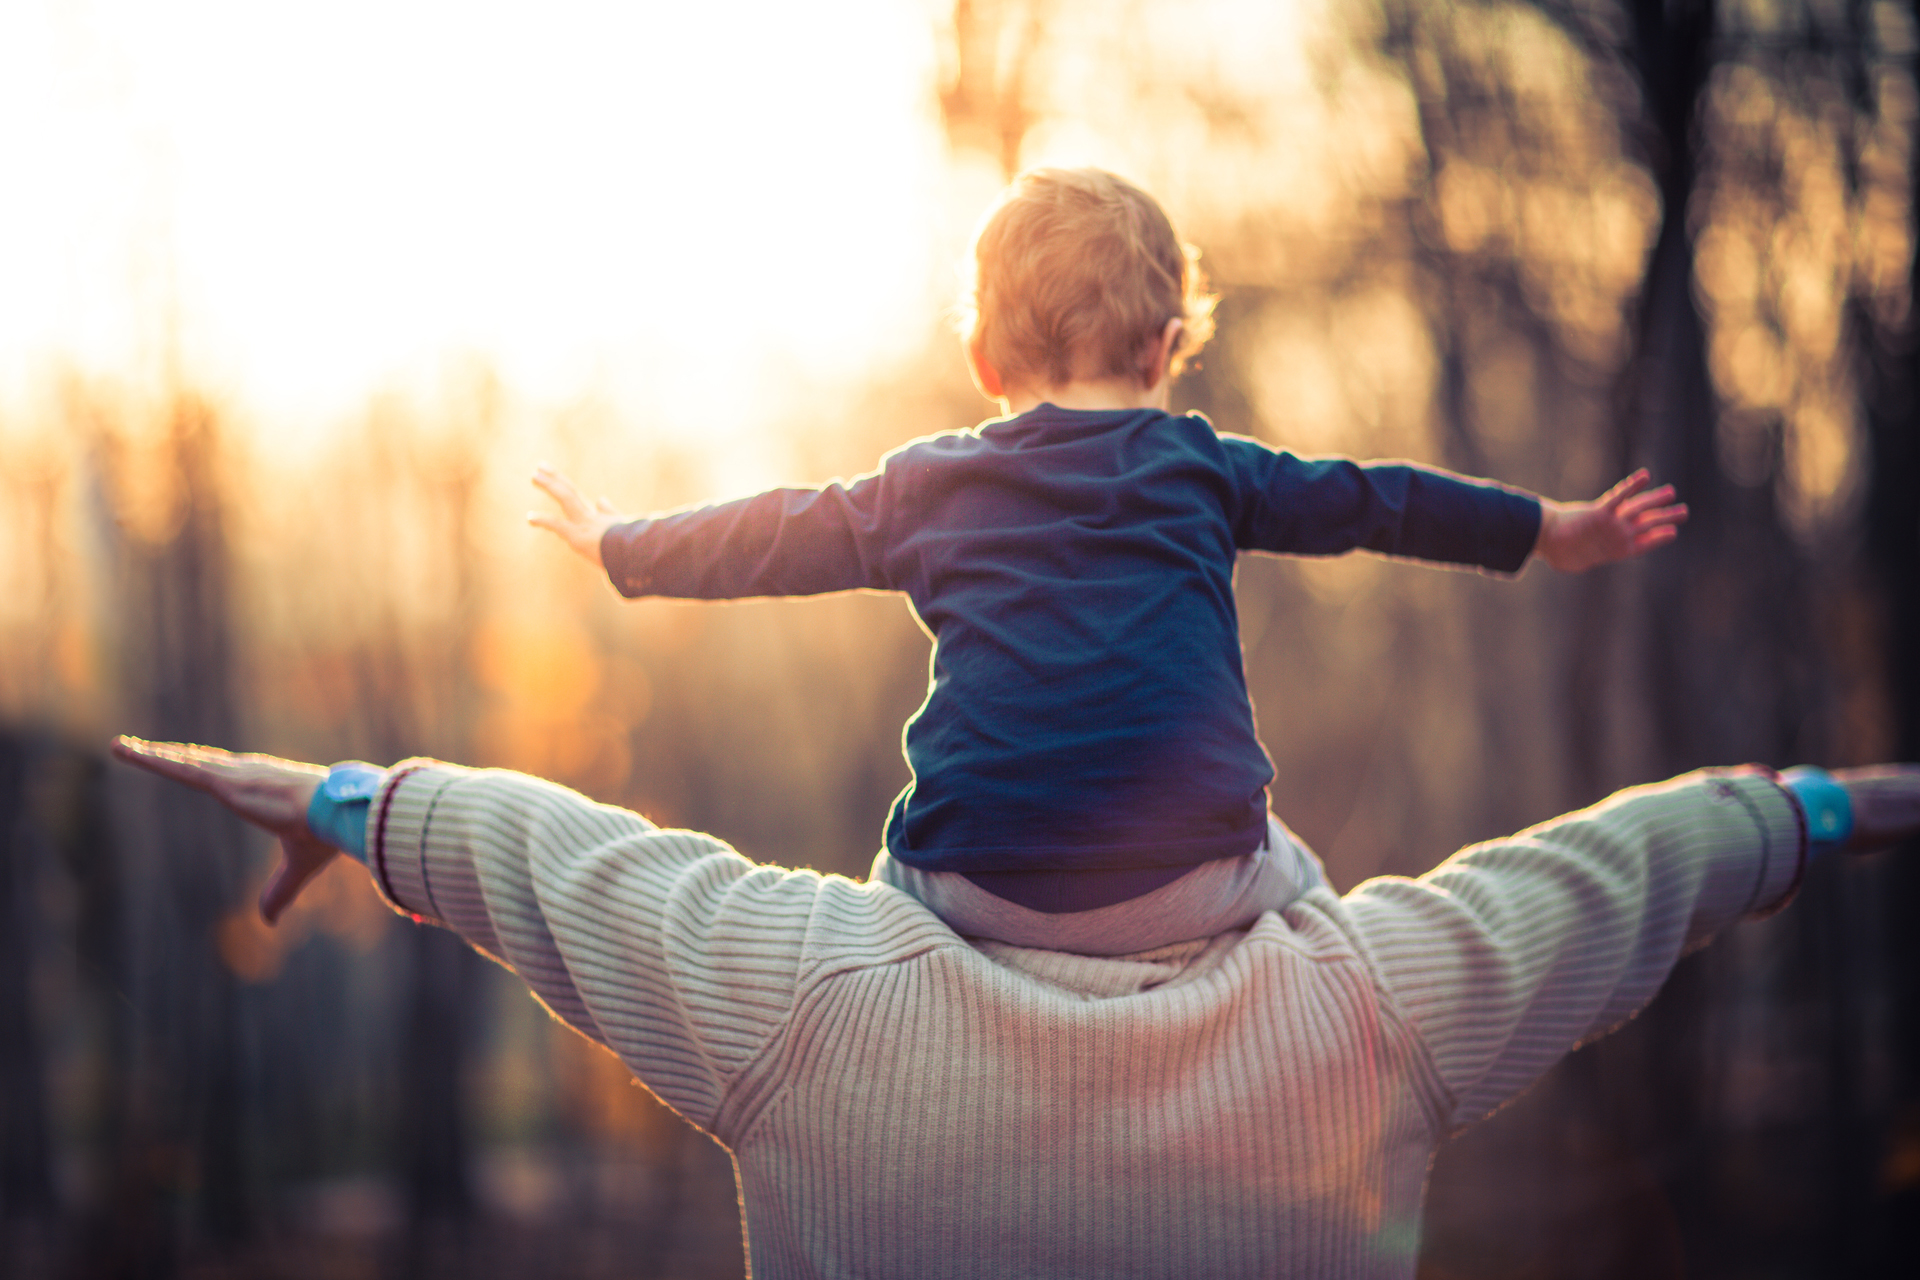 Investing in the future – a grandfather and his grandson in the park